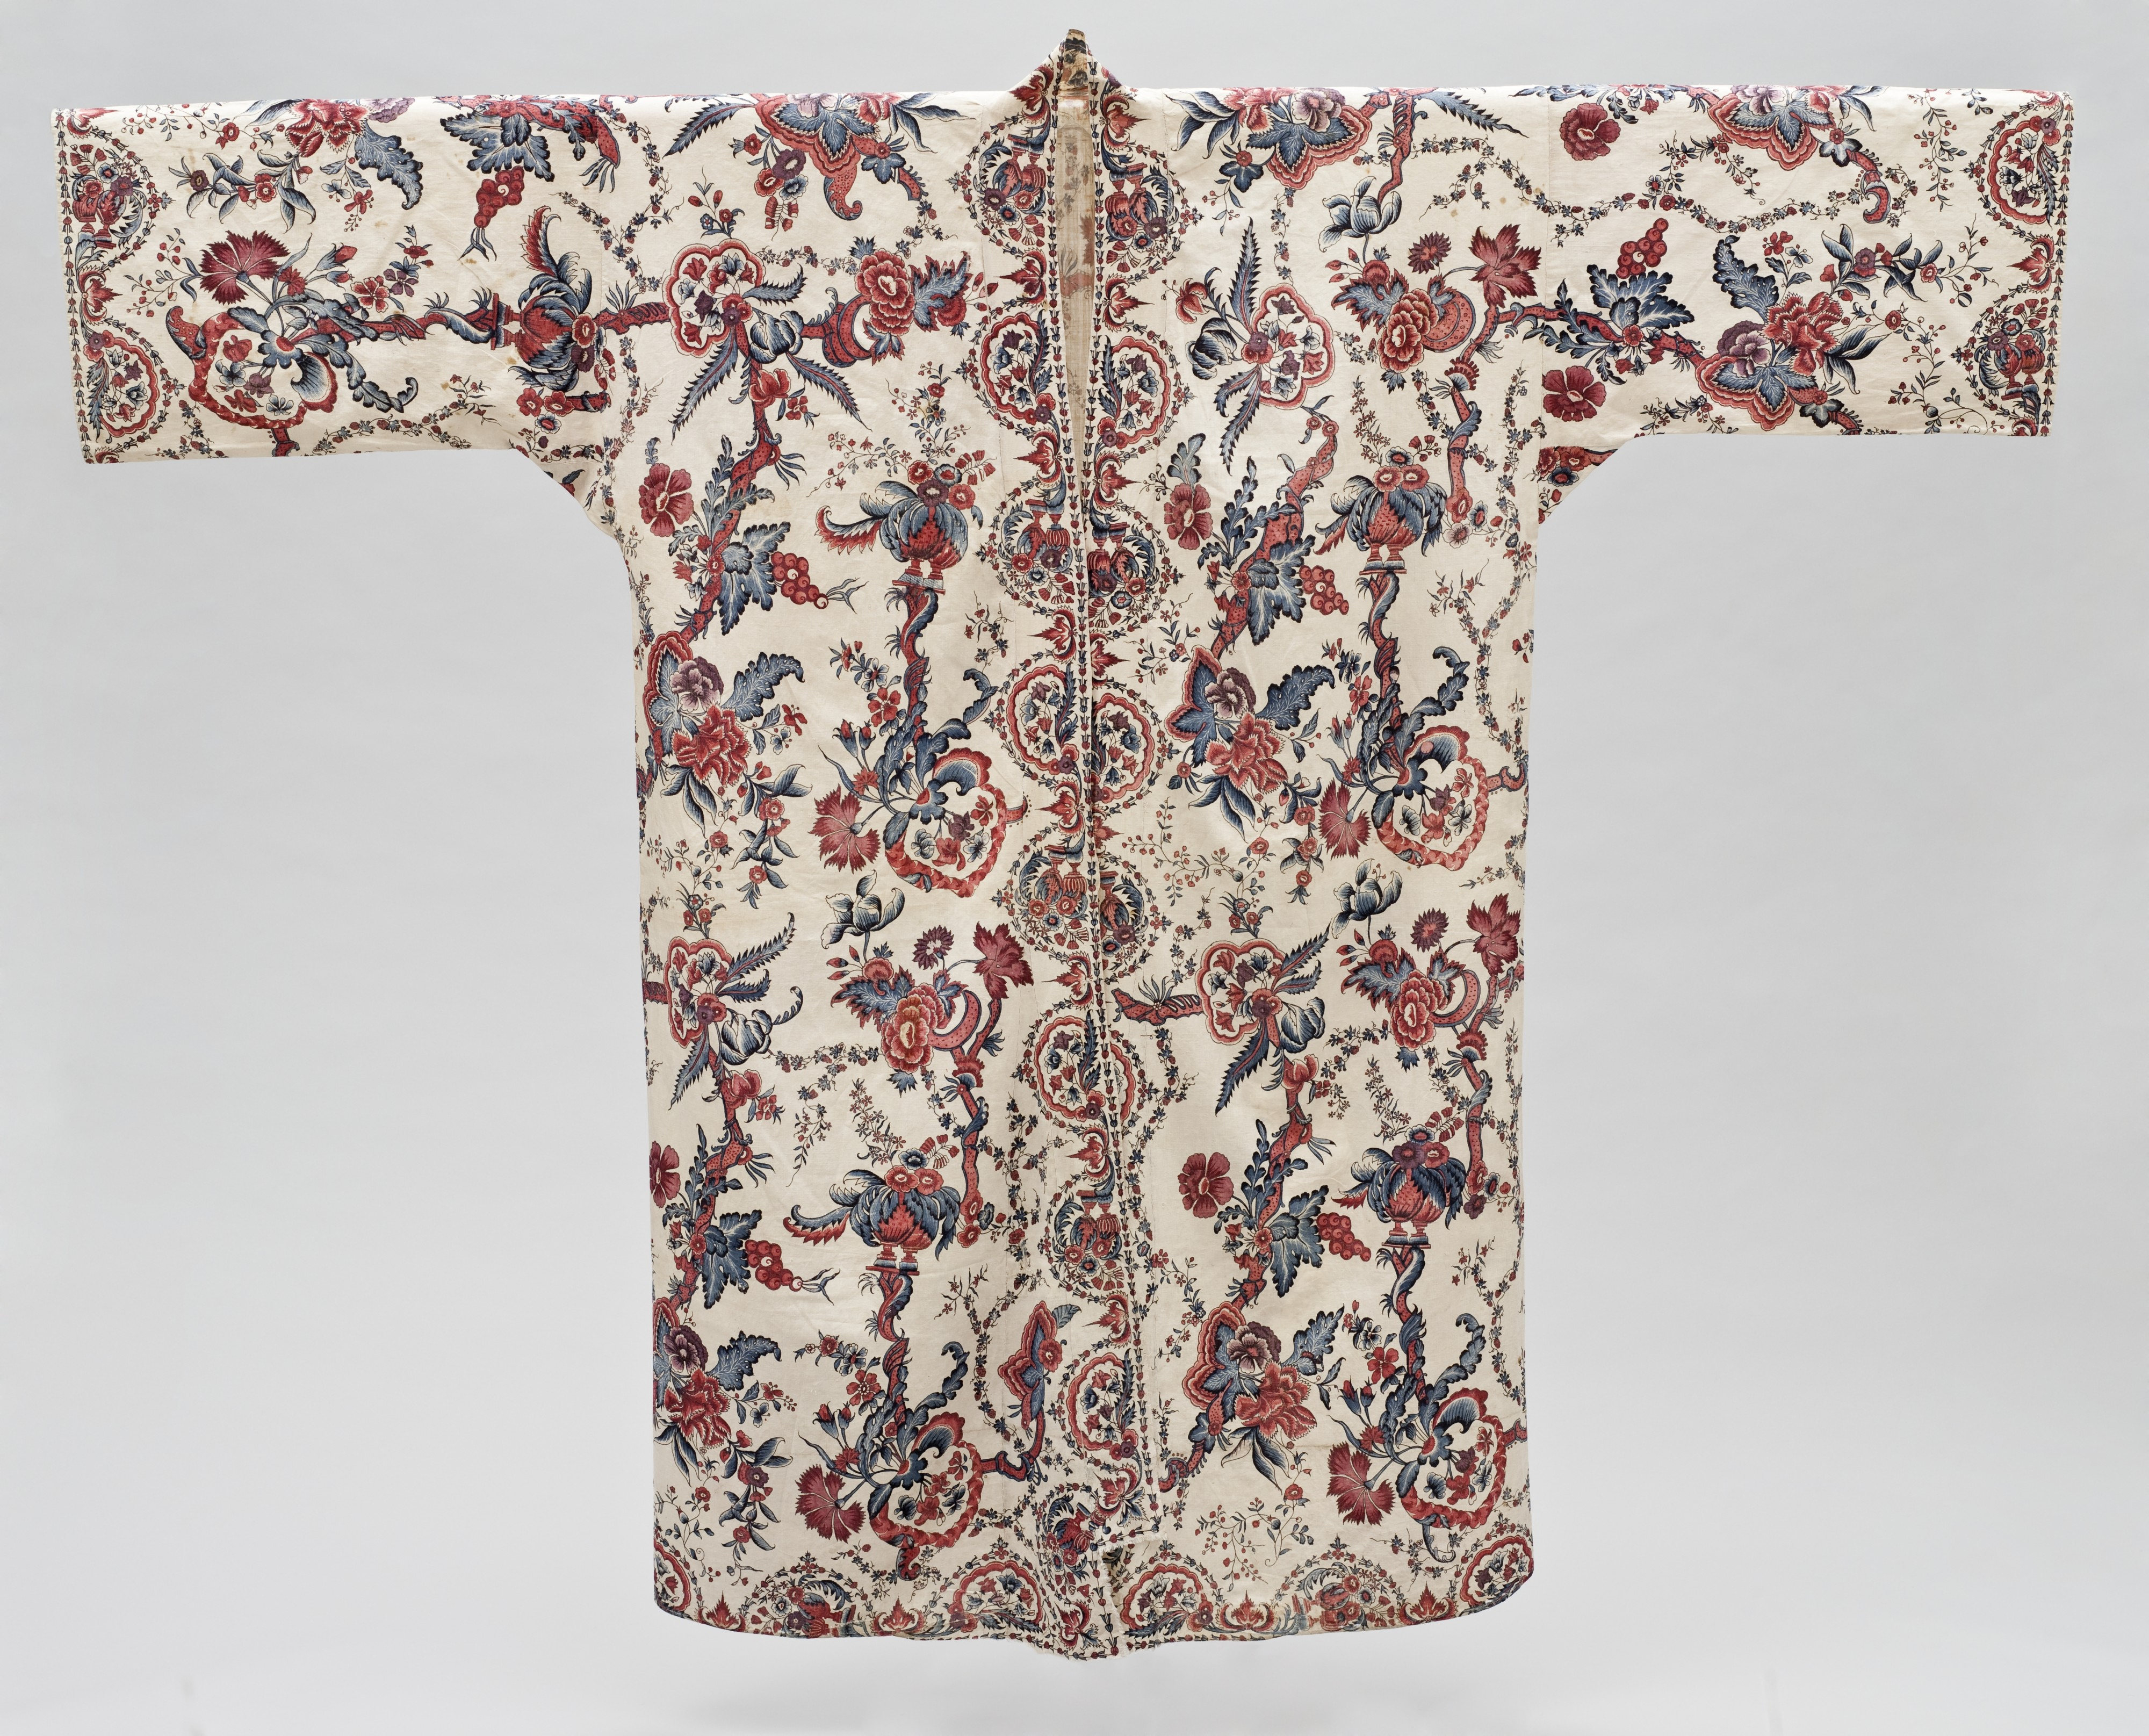 Man's banyan or at-home robe 1700-1750